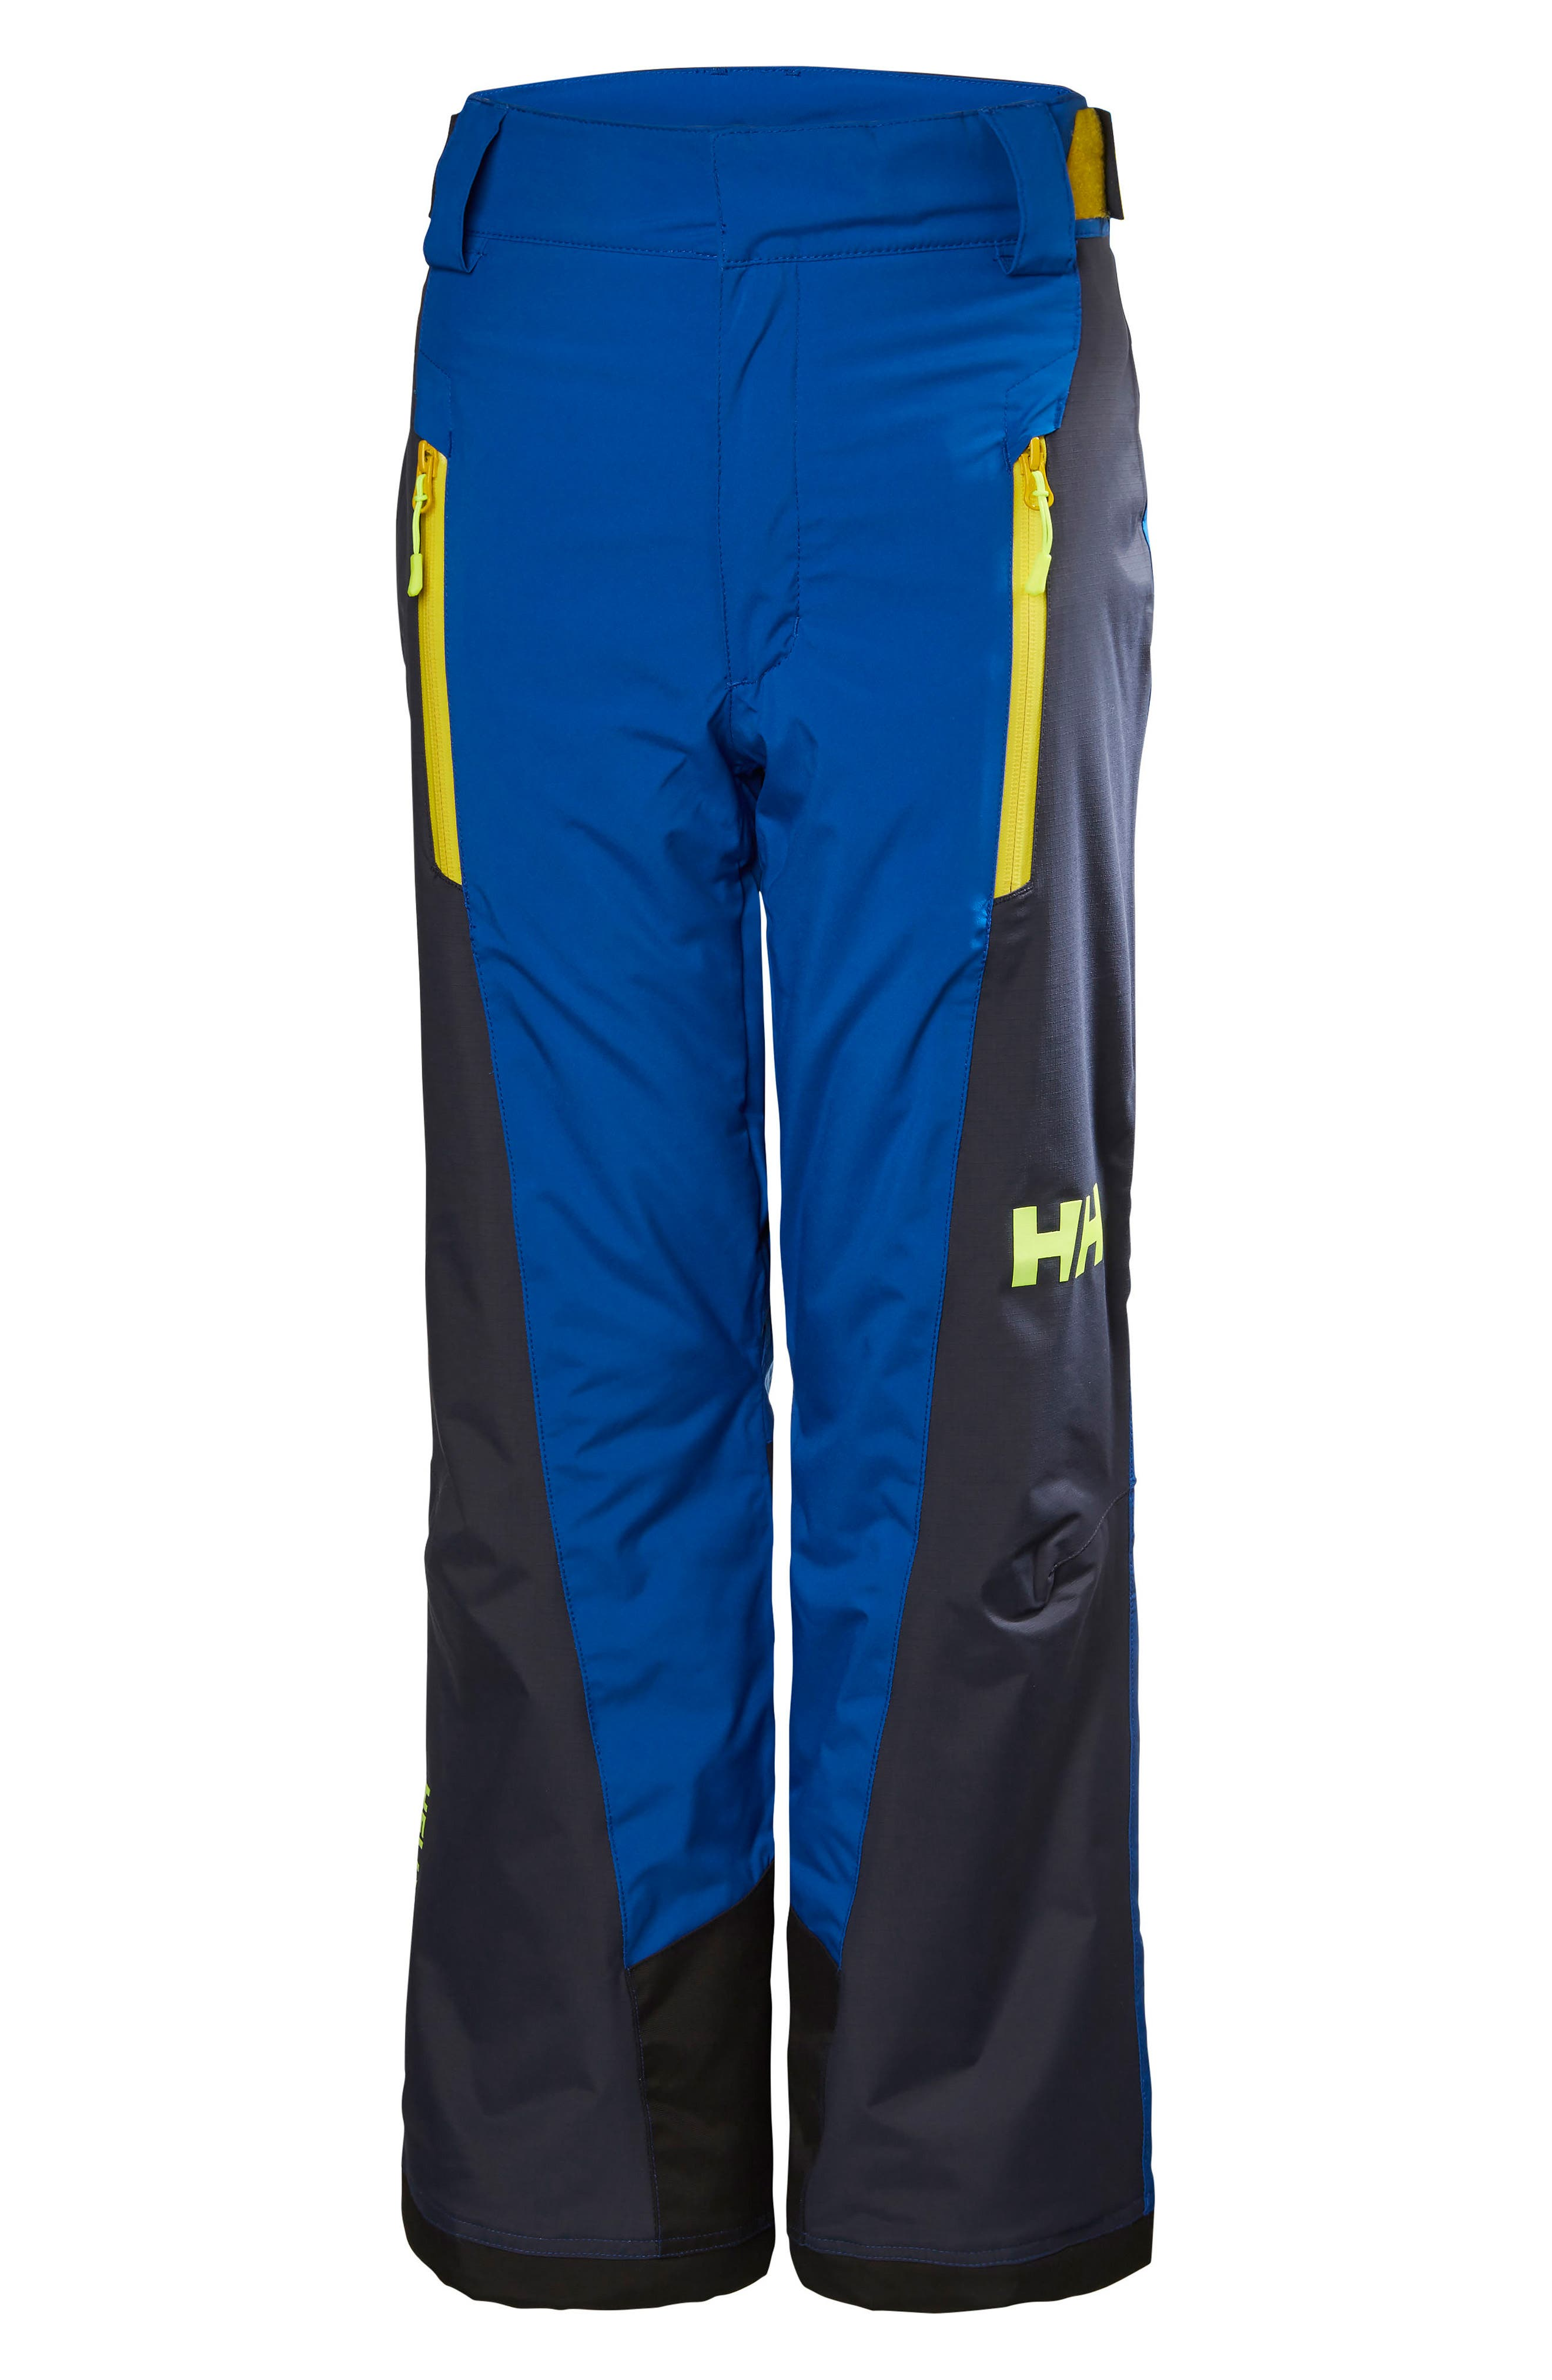 Alternate Image 1 Selected - Helly Hansen Jr Barrier Waterproof Snow Pants (Big Boys)